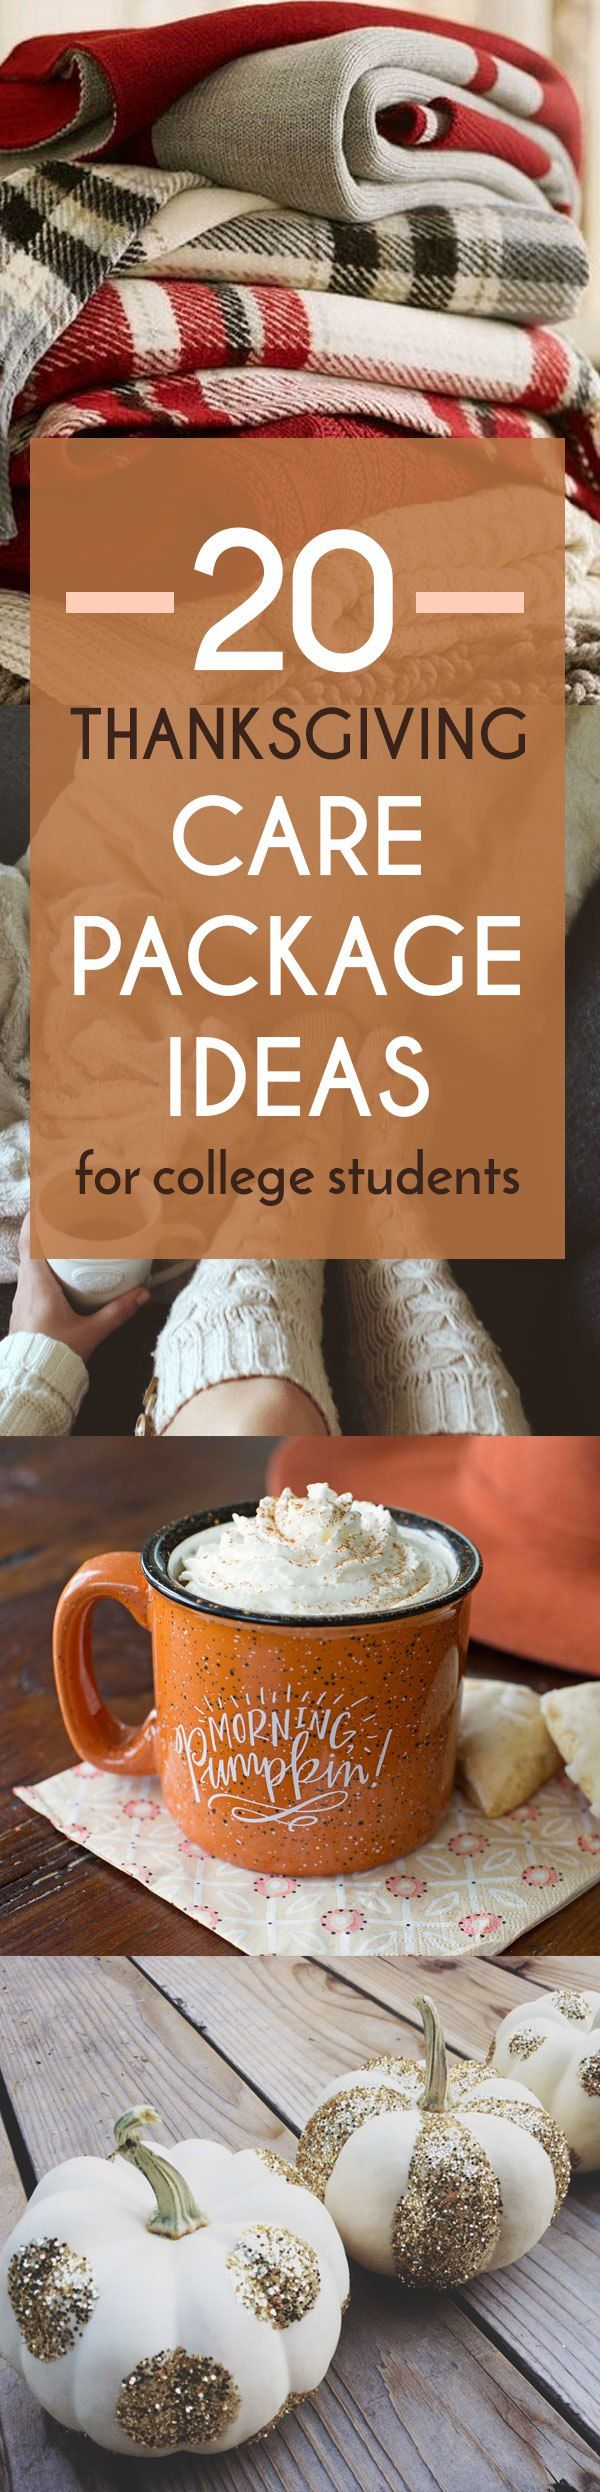 20 Festive Thanksgiving Care Package Ideas For College